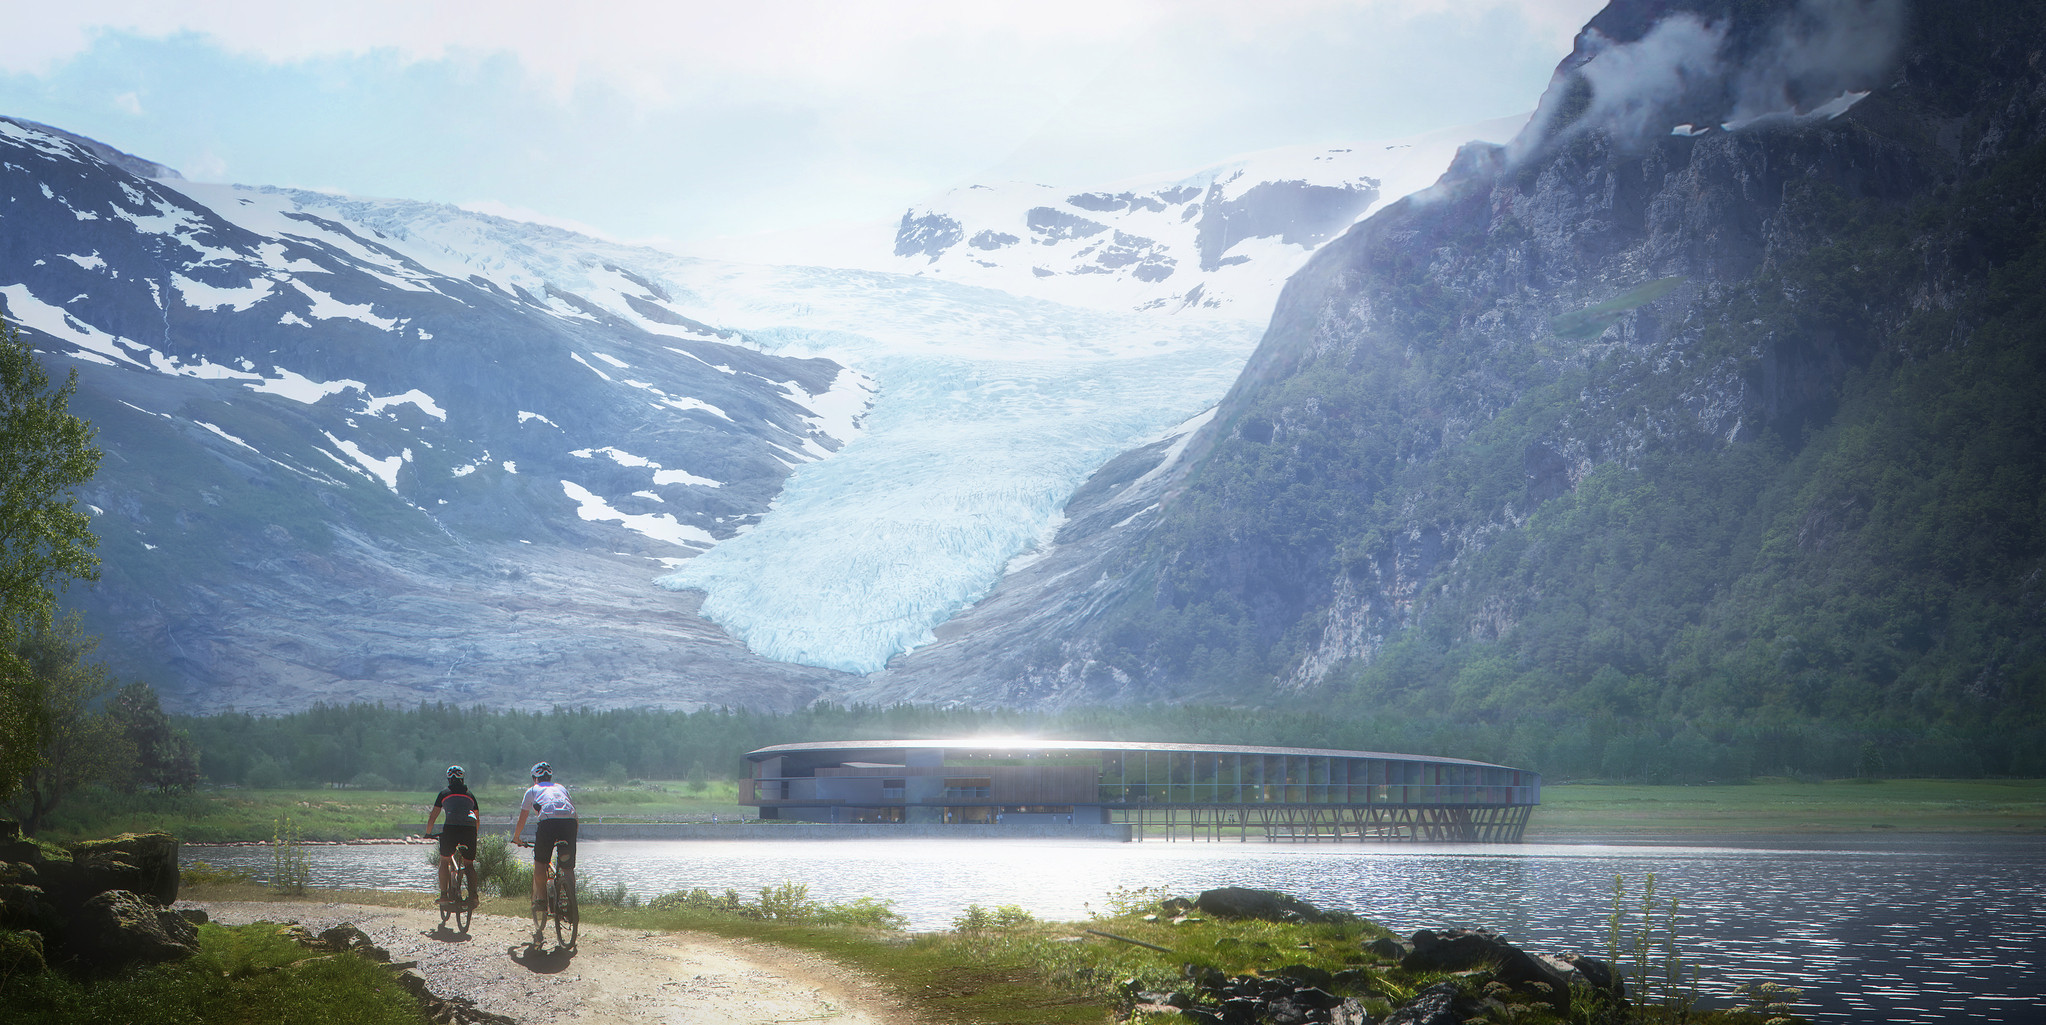 Svart, hotel, Svartisen, environment, energy positive, carbon neutral, glacier, Bodo, Norway, stay, circular, Snøhetta, design, architecture